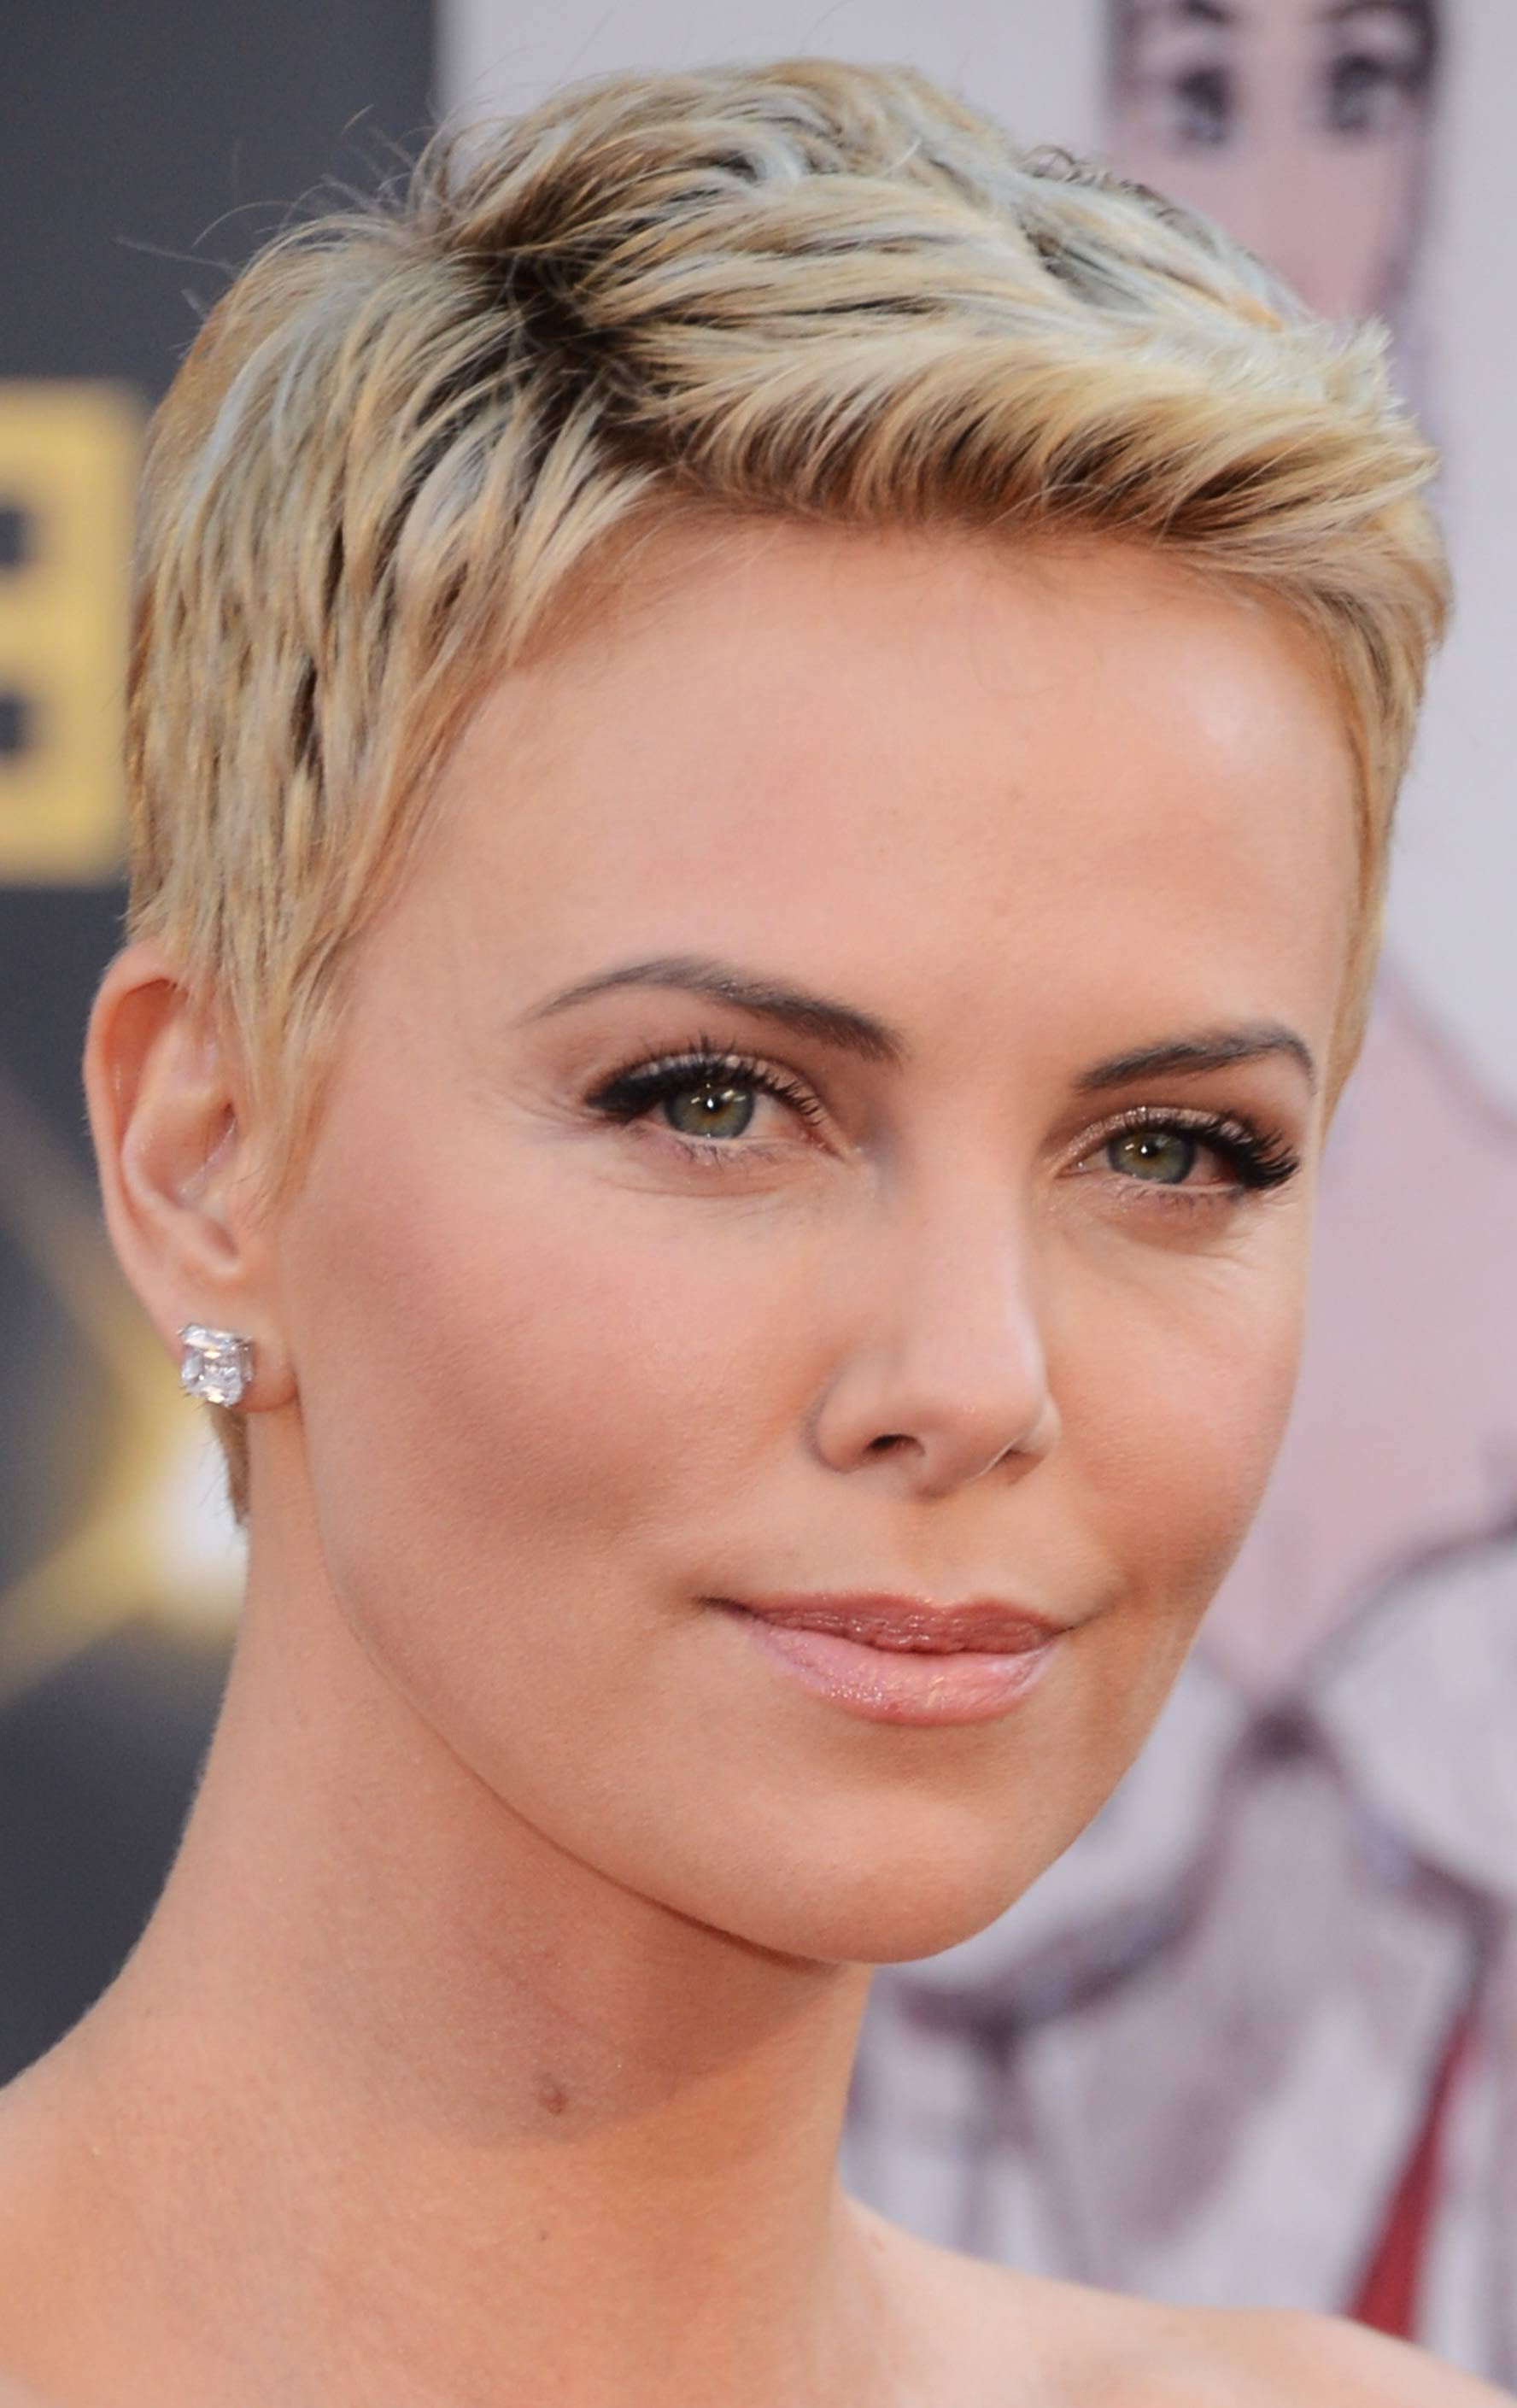 20 Flattering Hairstyles For Oval Faces | Things I Love | Pinterest In Oval Face Short Hair (View 5 of 25)